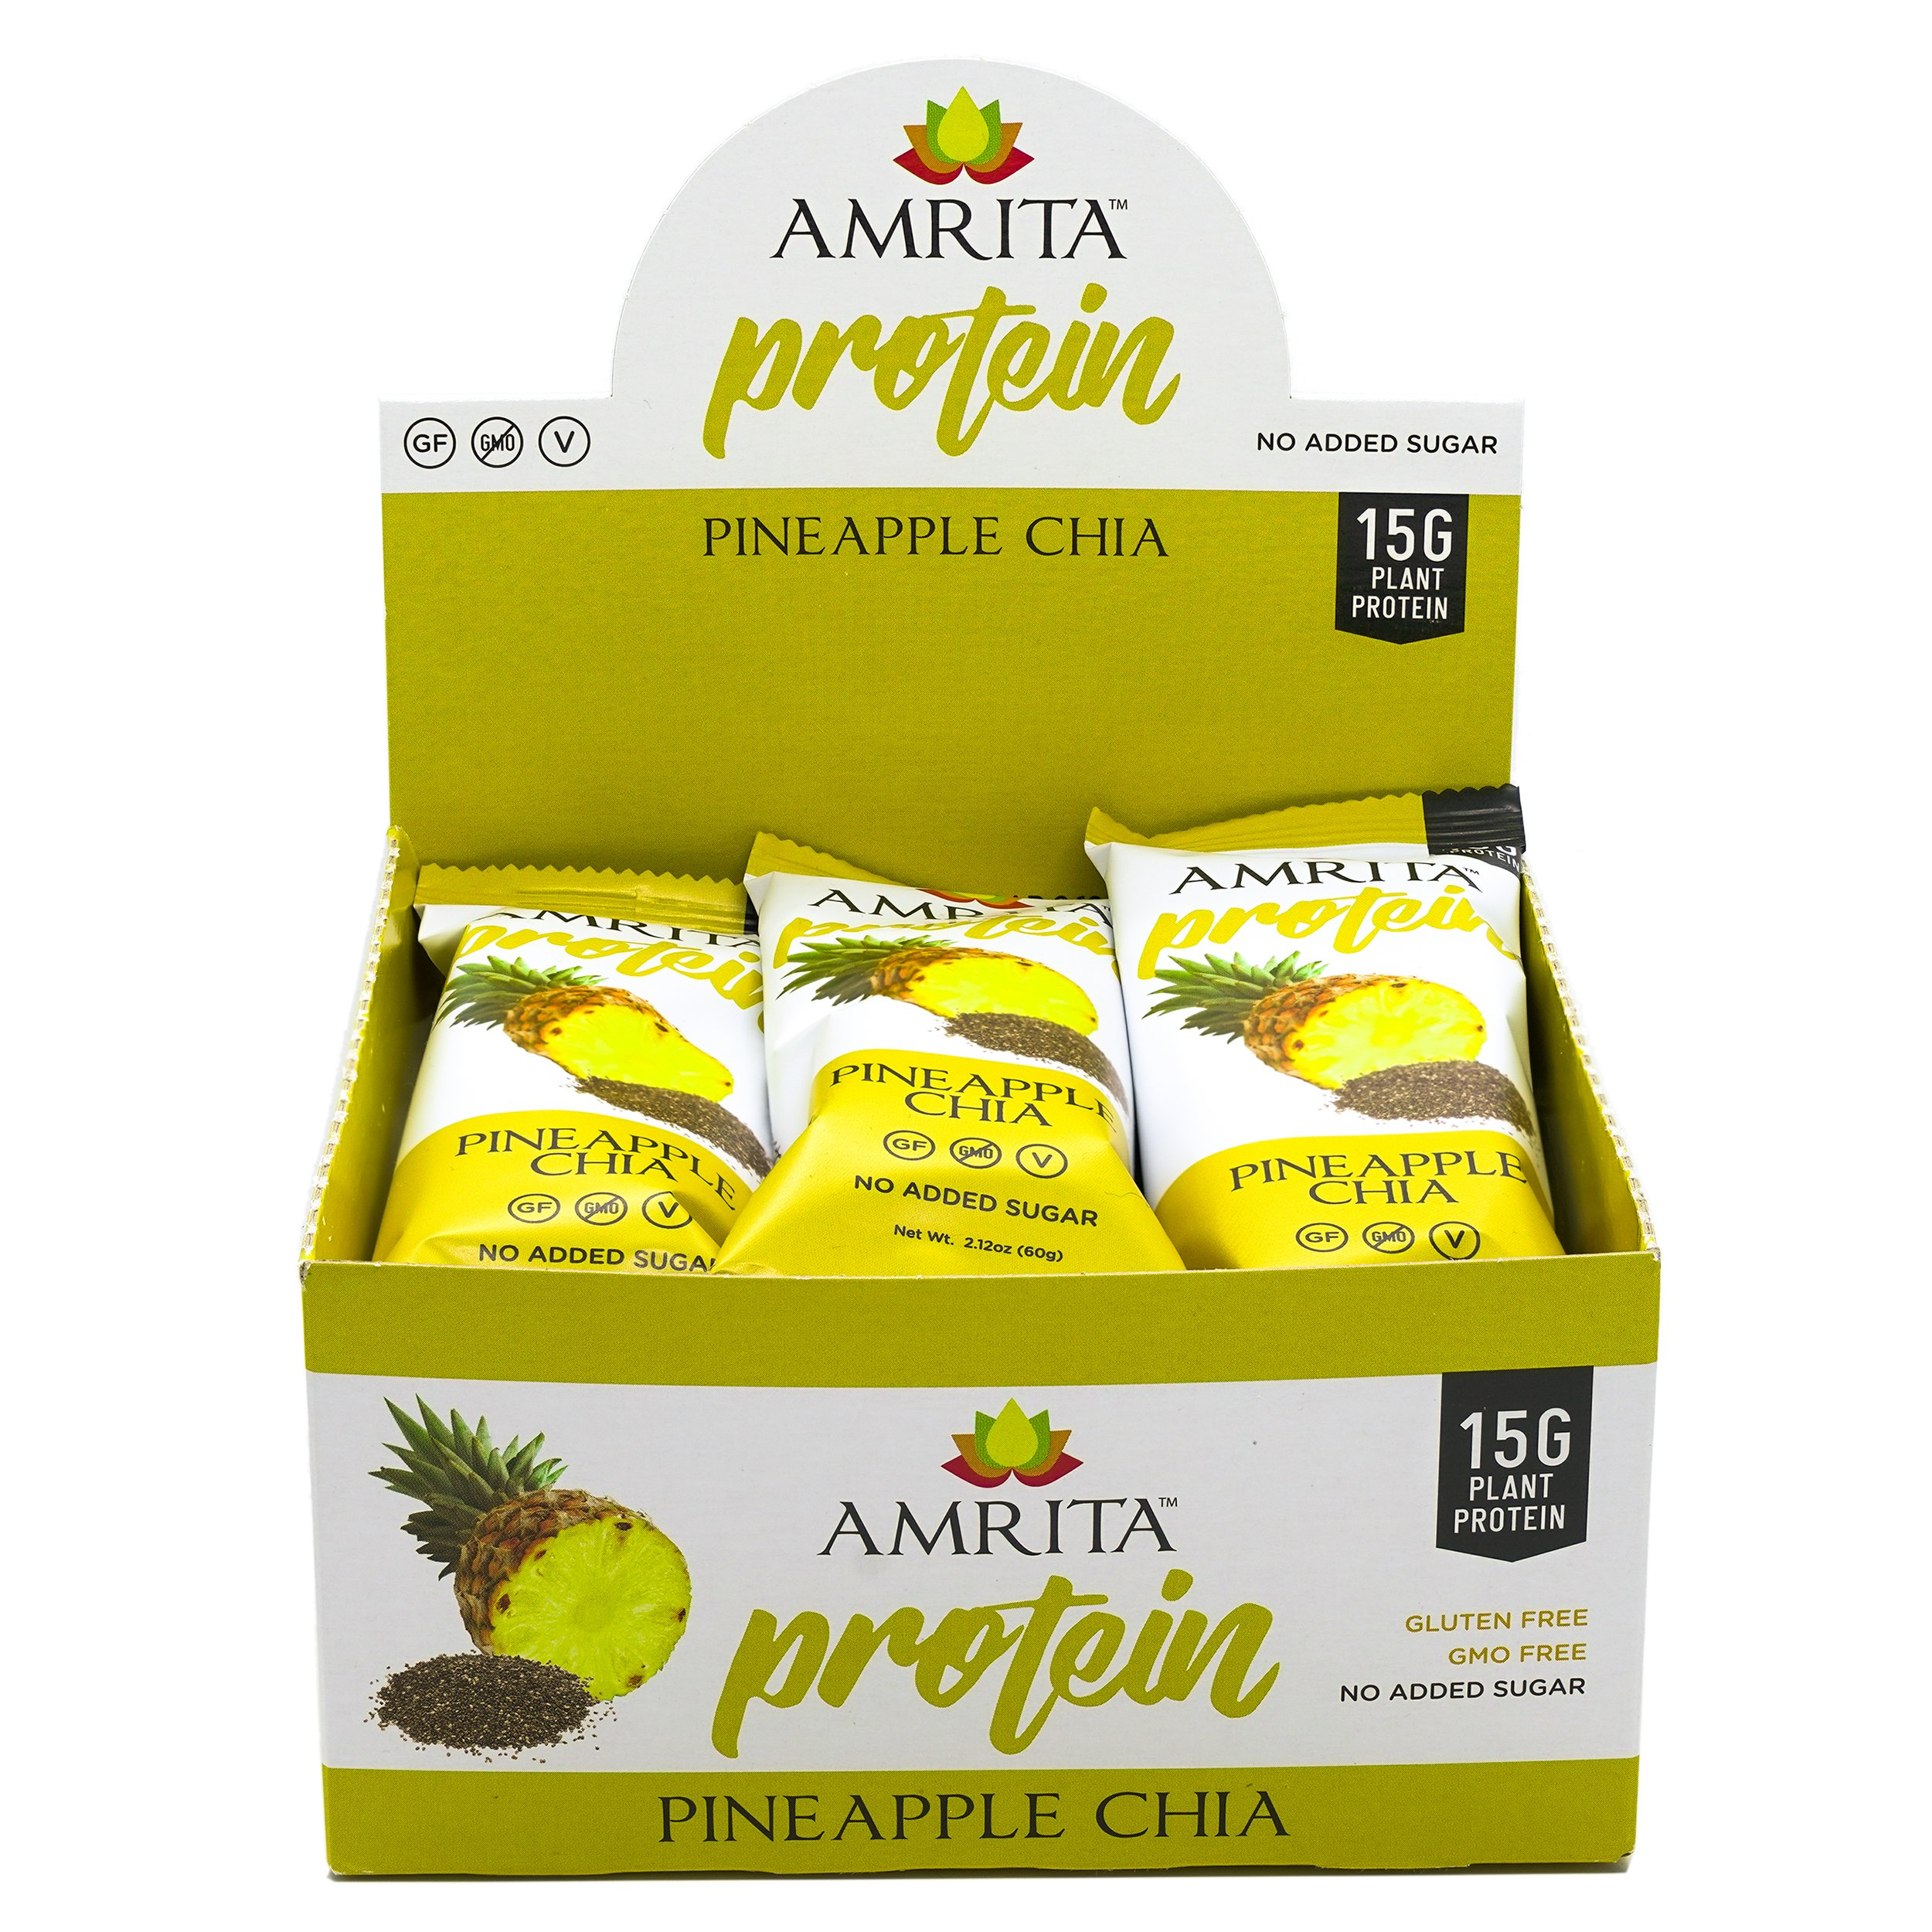 Amrita Plant Protein Gluten Free Bars with 15g Protein per Bar and 240 Kcals per High Protein Bar, Zero Trans or Saturated Fat, Non-GMO Gluten Free (Pineapple Chia)